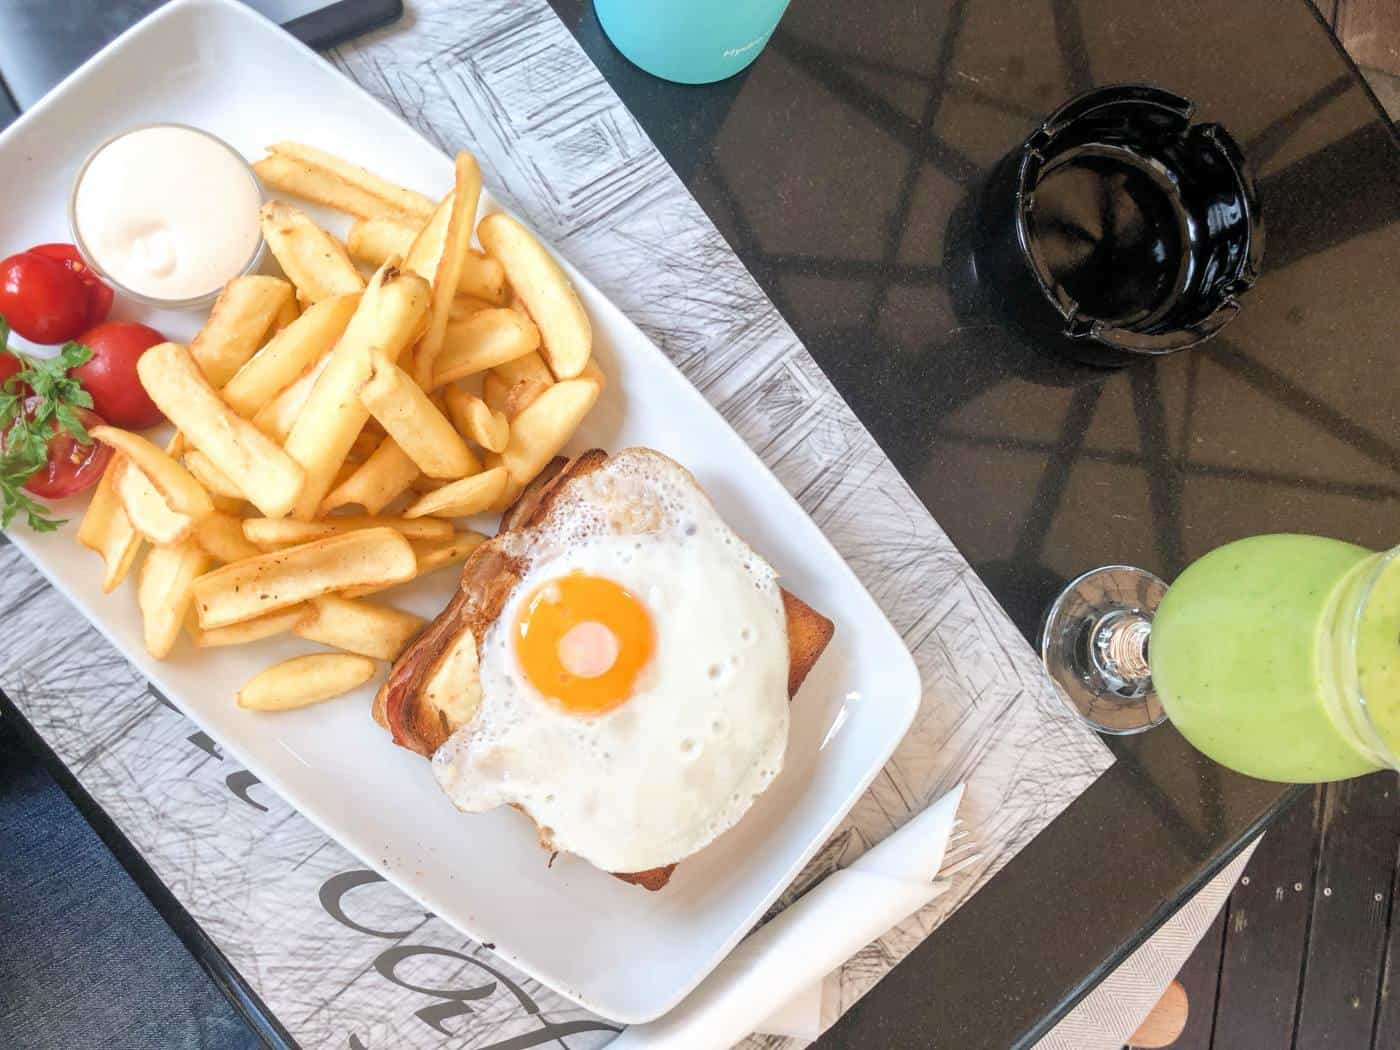 Have breakfast at Le Petite Cafe with one day in Ljubljana